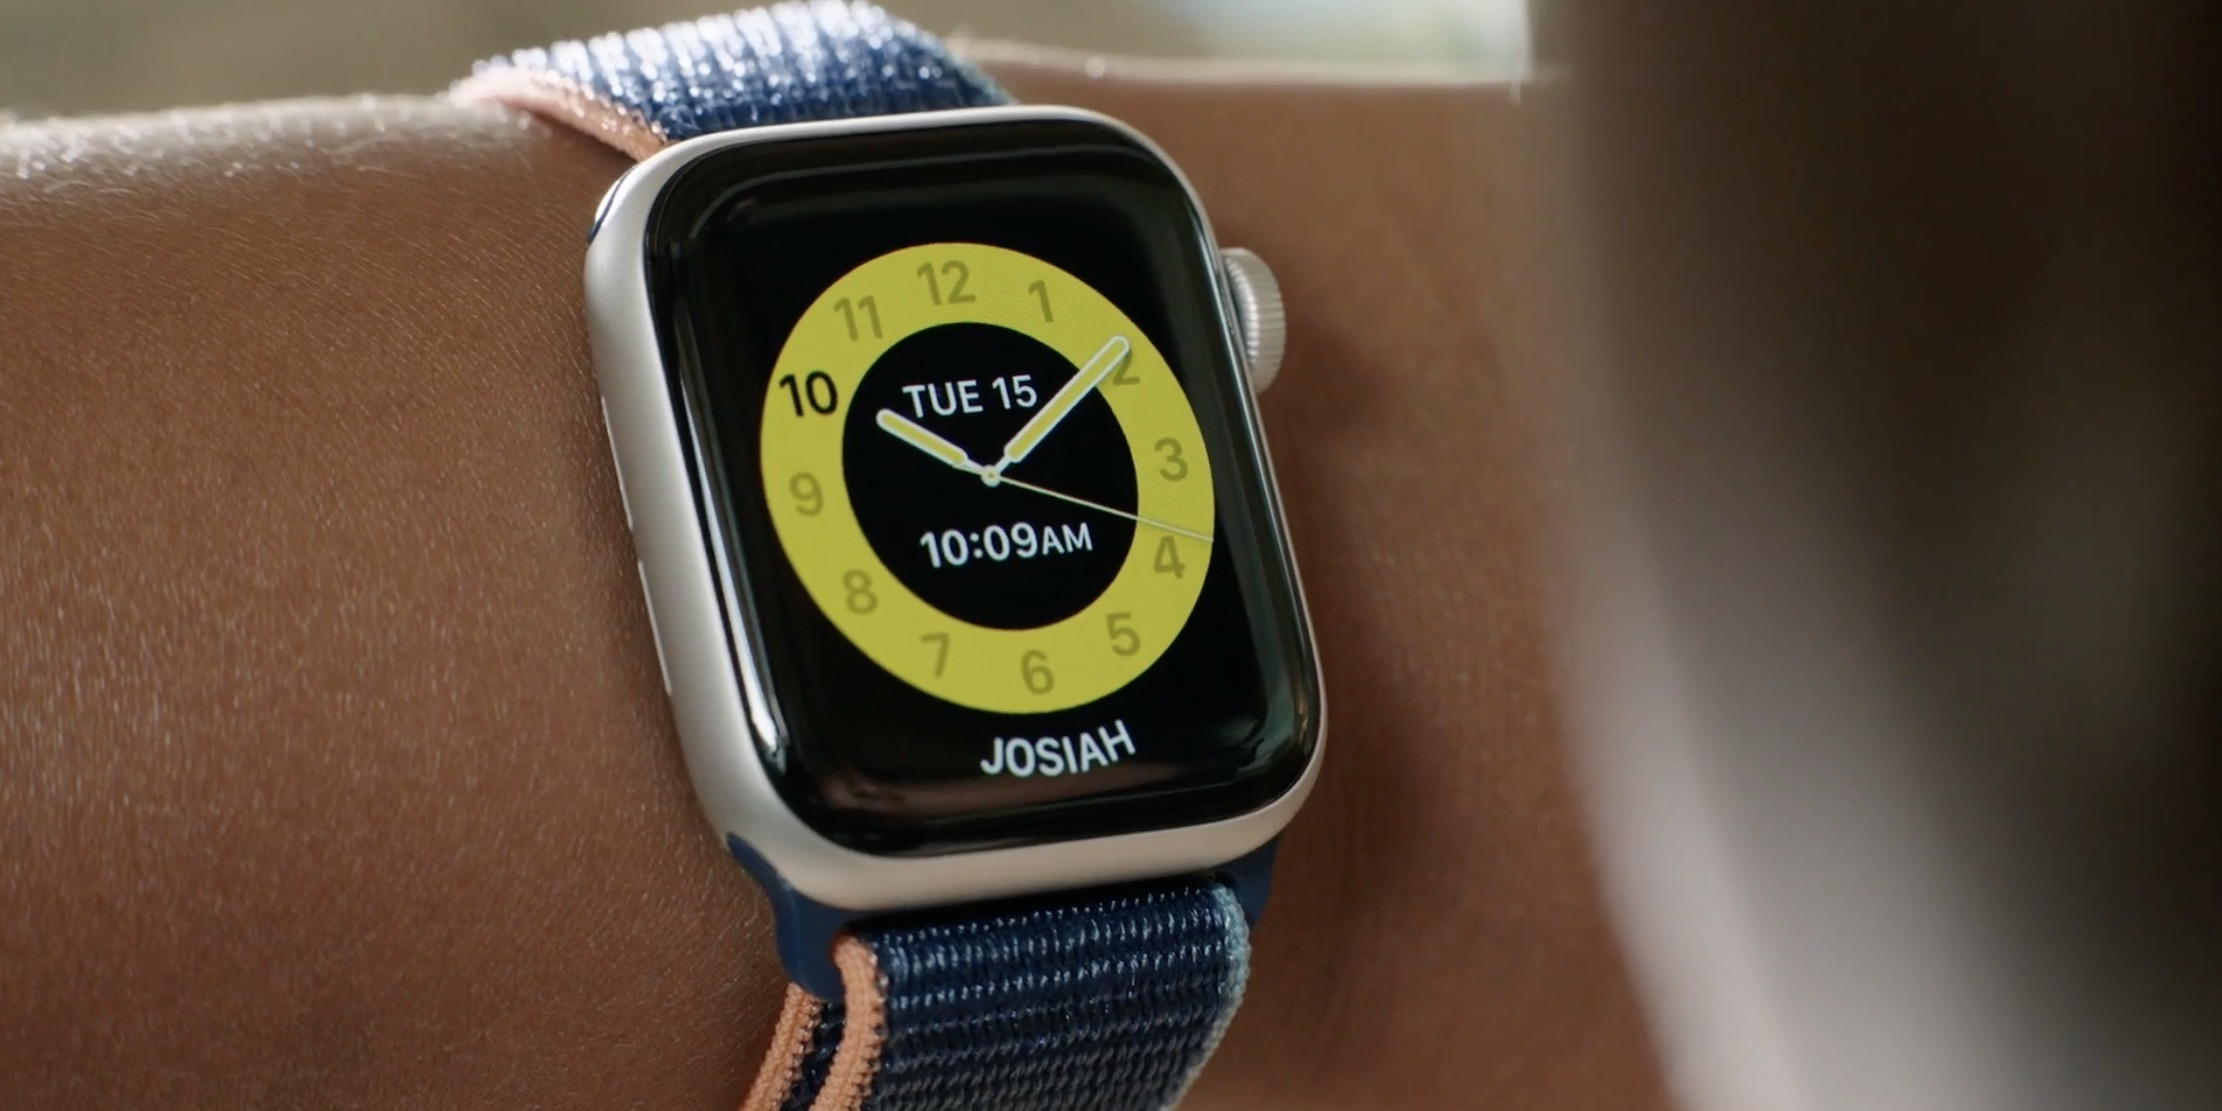 photo of How to setup Apple Watch Schooltime to help improve focus image